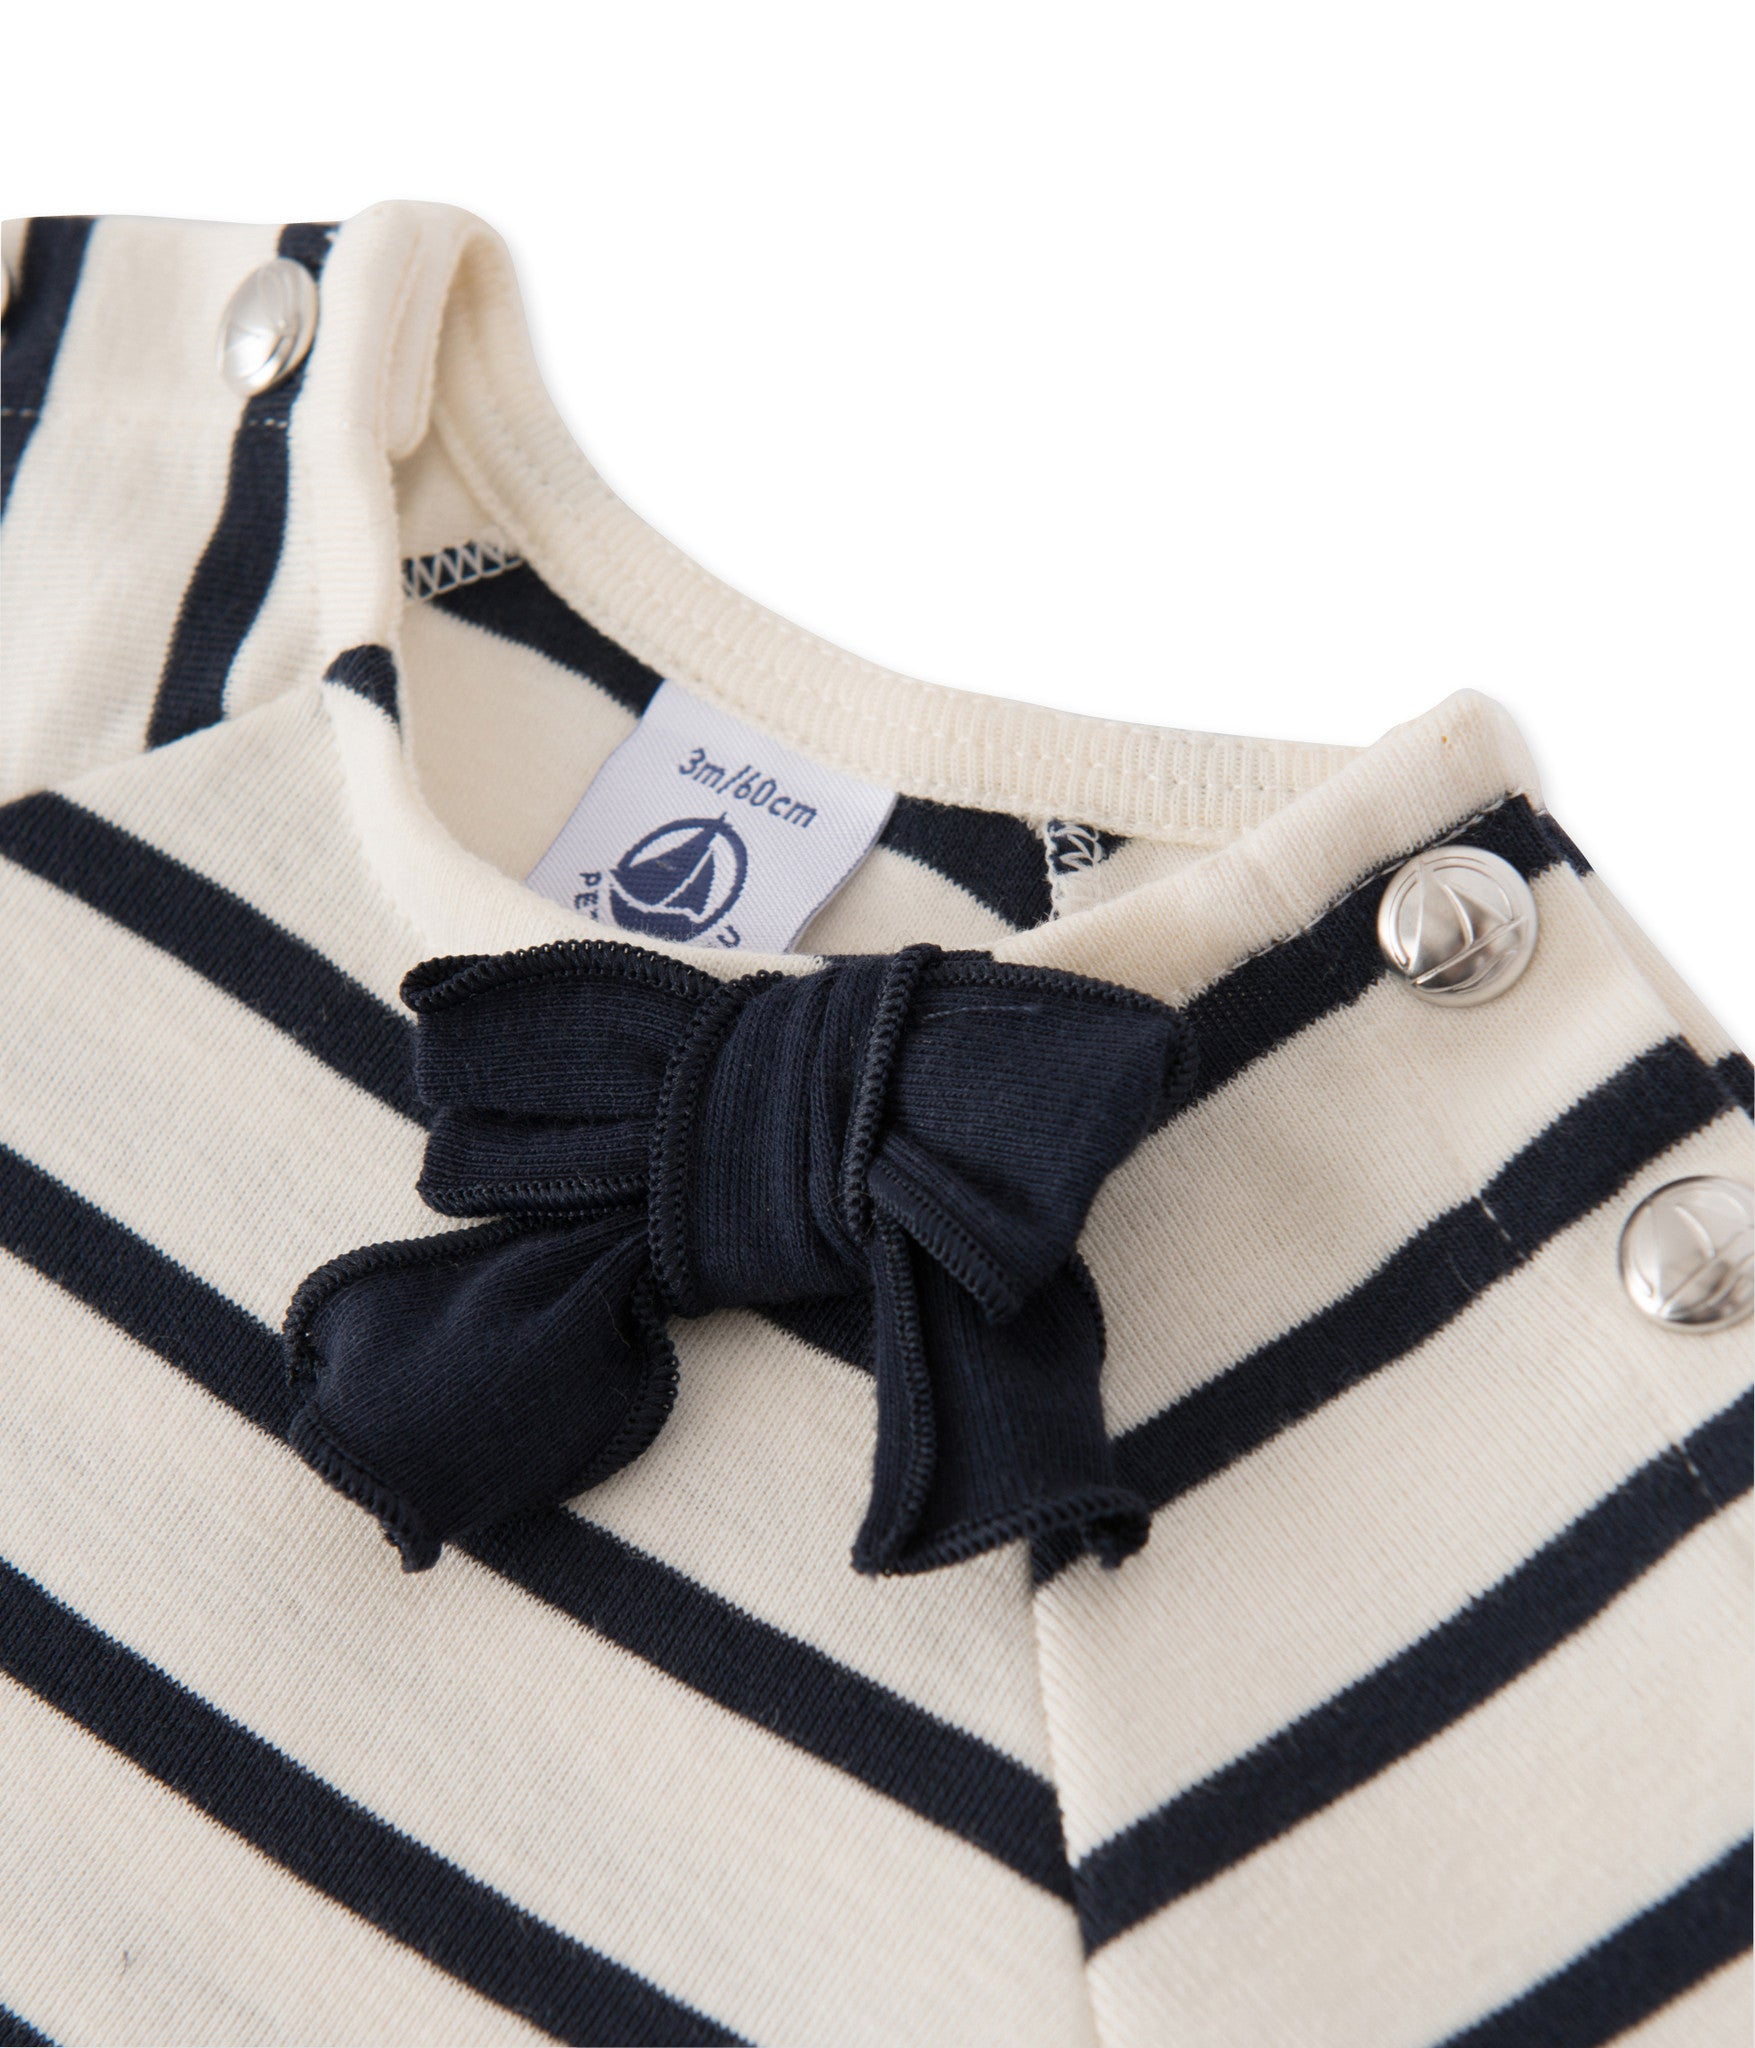 Petit Bateau - T-shirt, Baby Sailor Tee - Coquille beige / Smoking blue